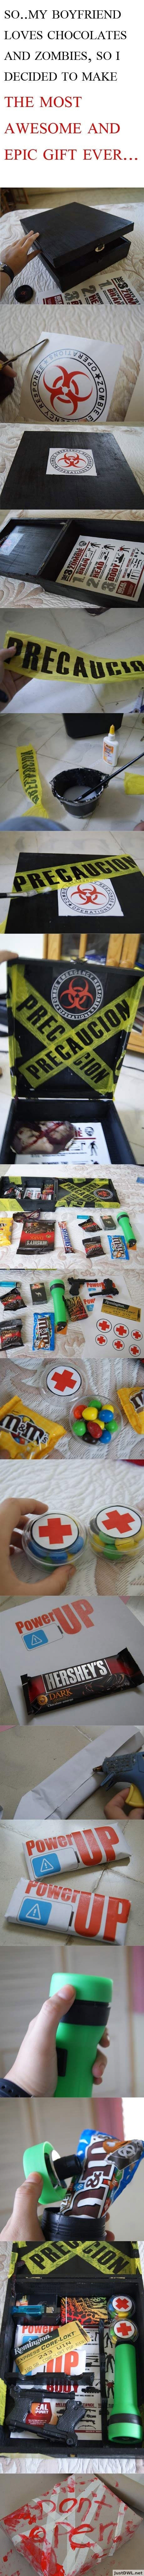 Awesome Zombie kit gift<<